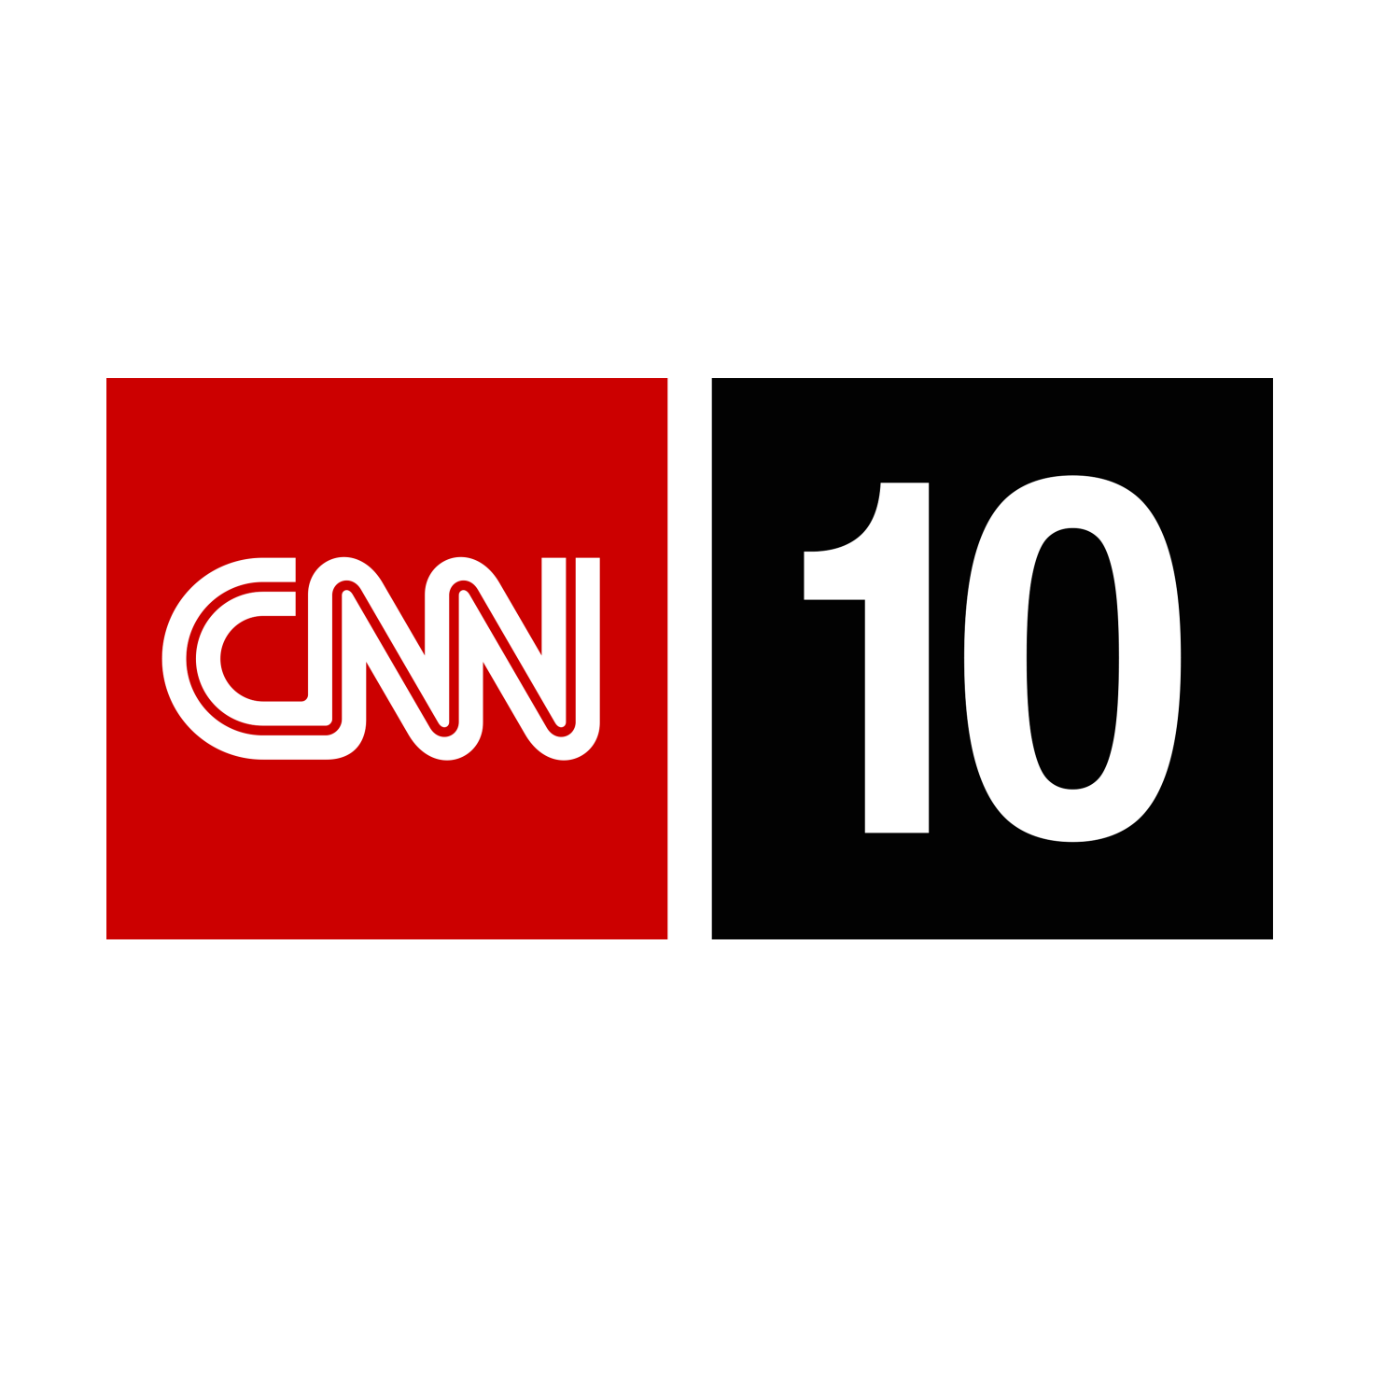 CNN Student News - May 14, 2013